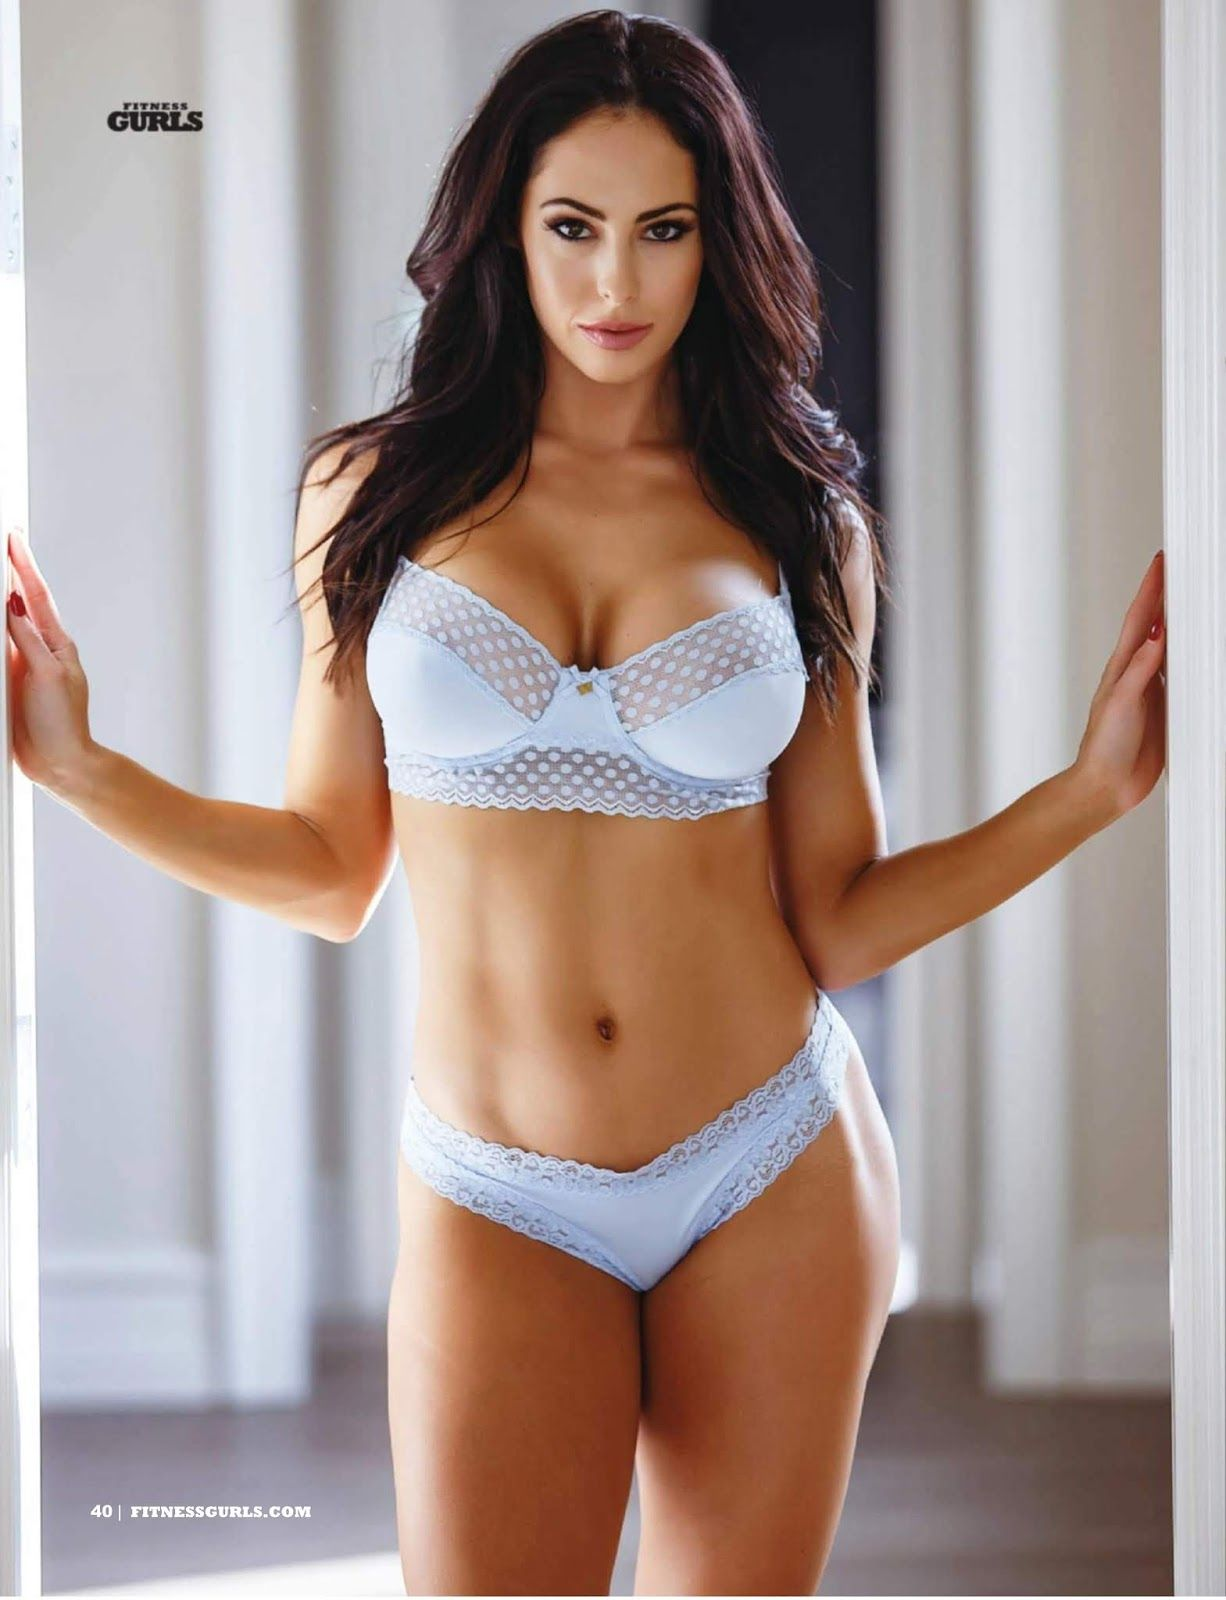 2019 Hope Beel nudes (47 images), Paparazzi